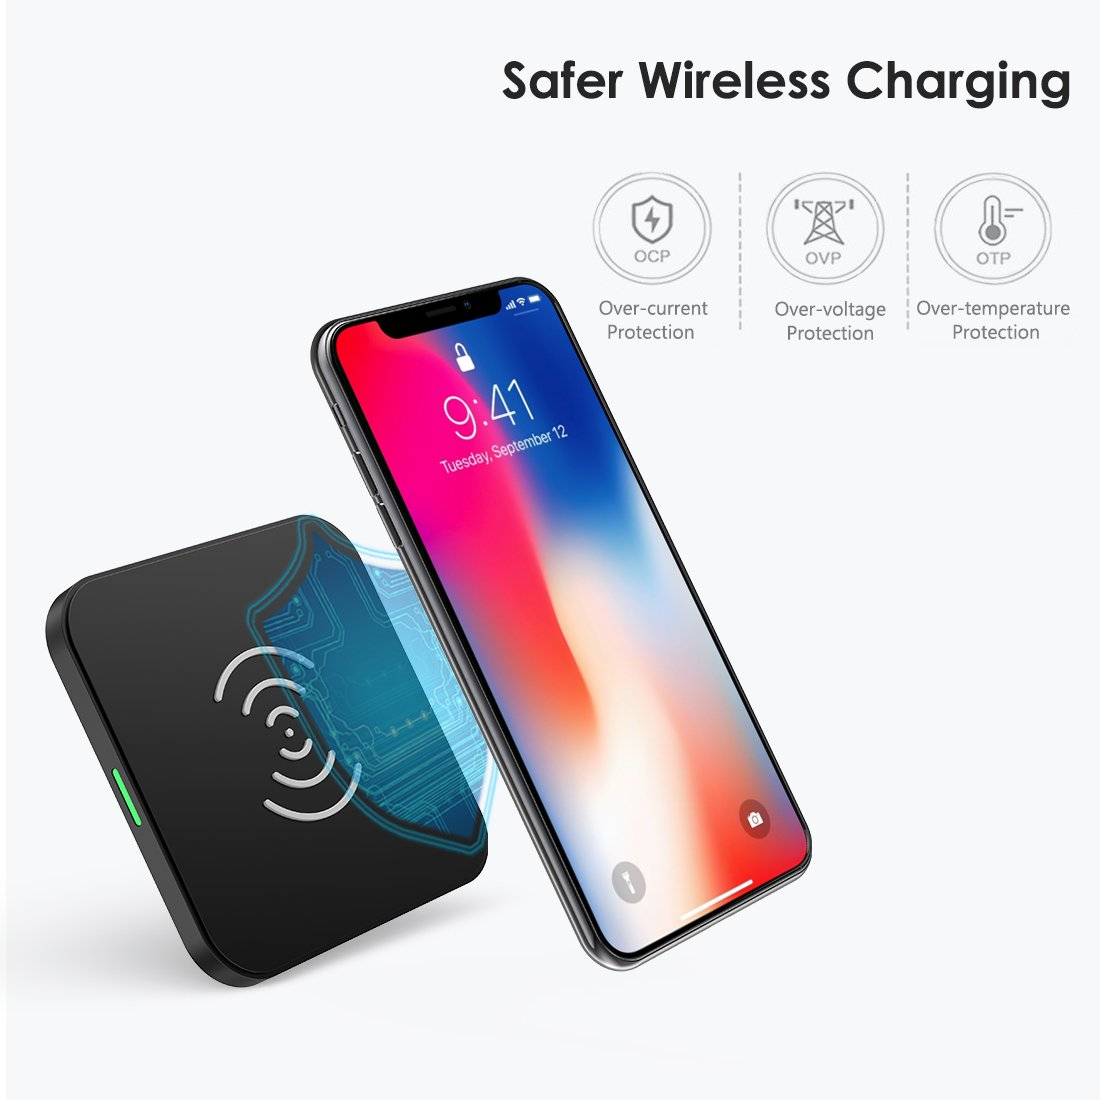 CHOETECH 10W Fast Wireless Charger Compatible Samsung Galaxy S9, S9 S8 Plus,Note 8, S8, S7, S7 Edge, Standard Wireless Charging Pad Compatible iPhone X, 8, 8 Plus (No AC Adapter) by CHOETECH (Image #4)